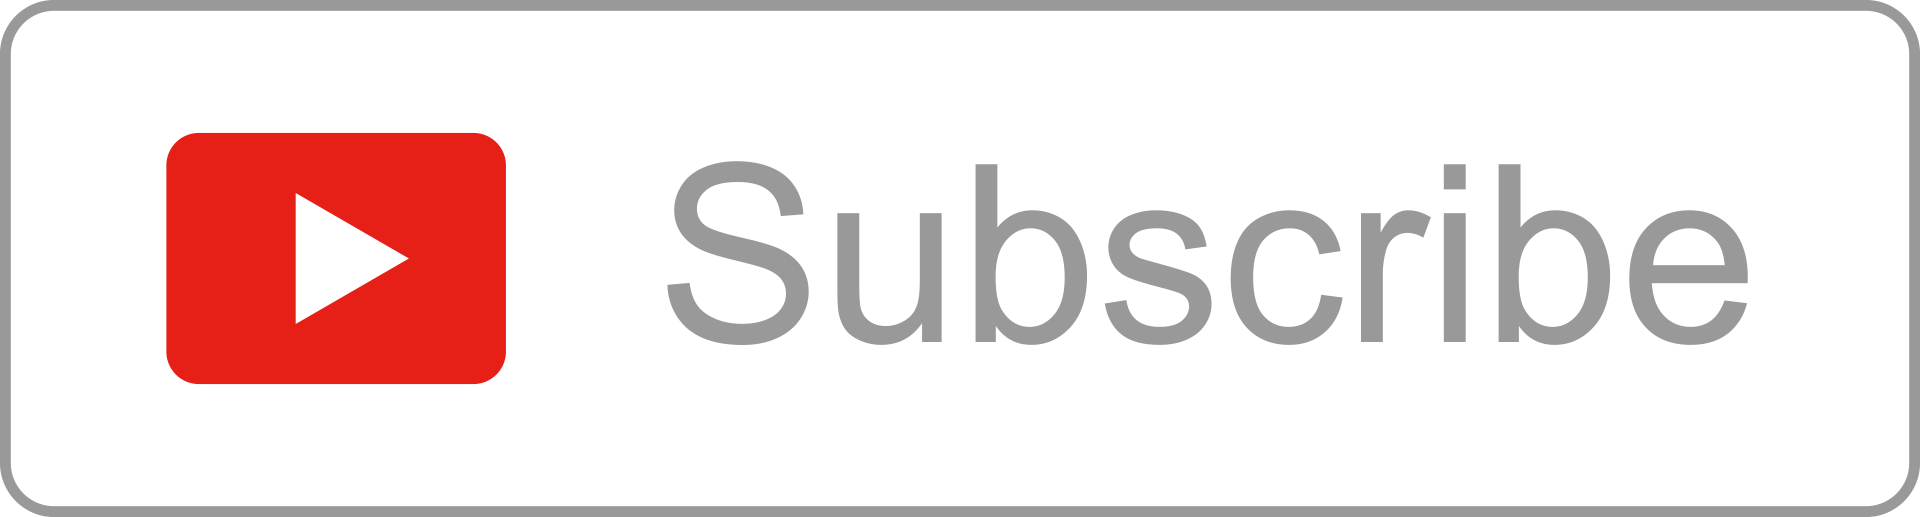 Free-Outline-YouTube-Subscribe-Button-by-AlfredoCreates